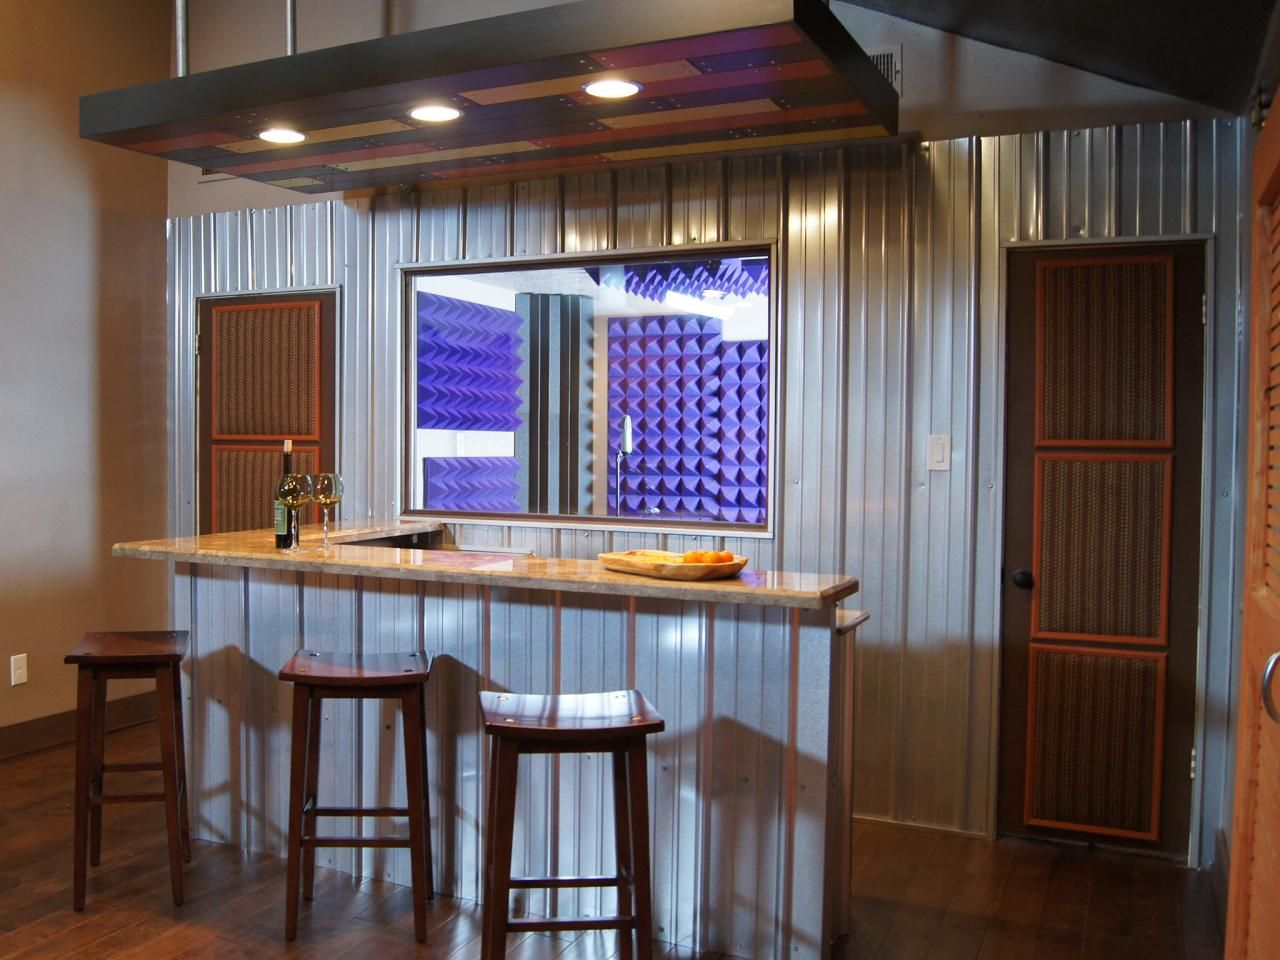 Basement Bar Plans Diy. Basement Bar Plans Diy O